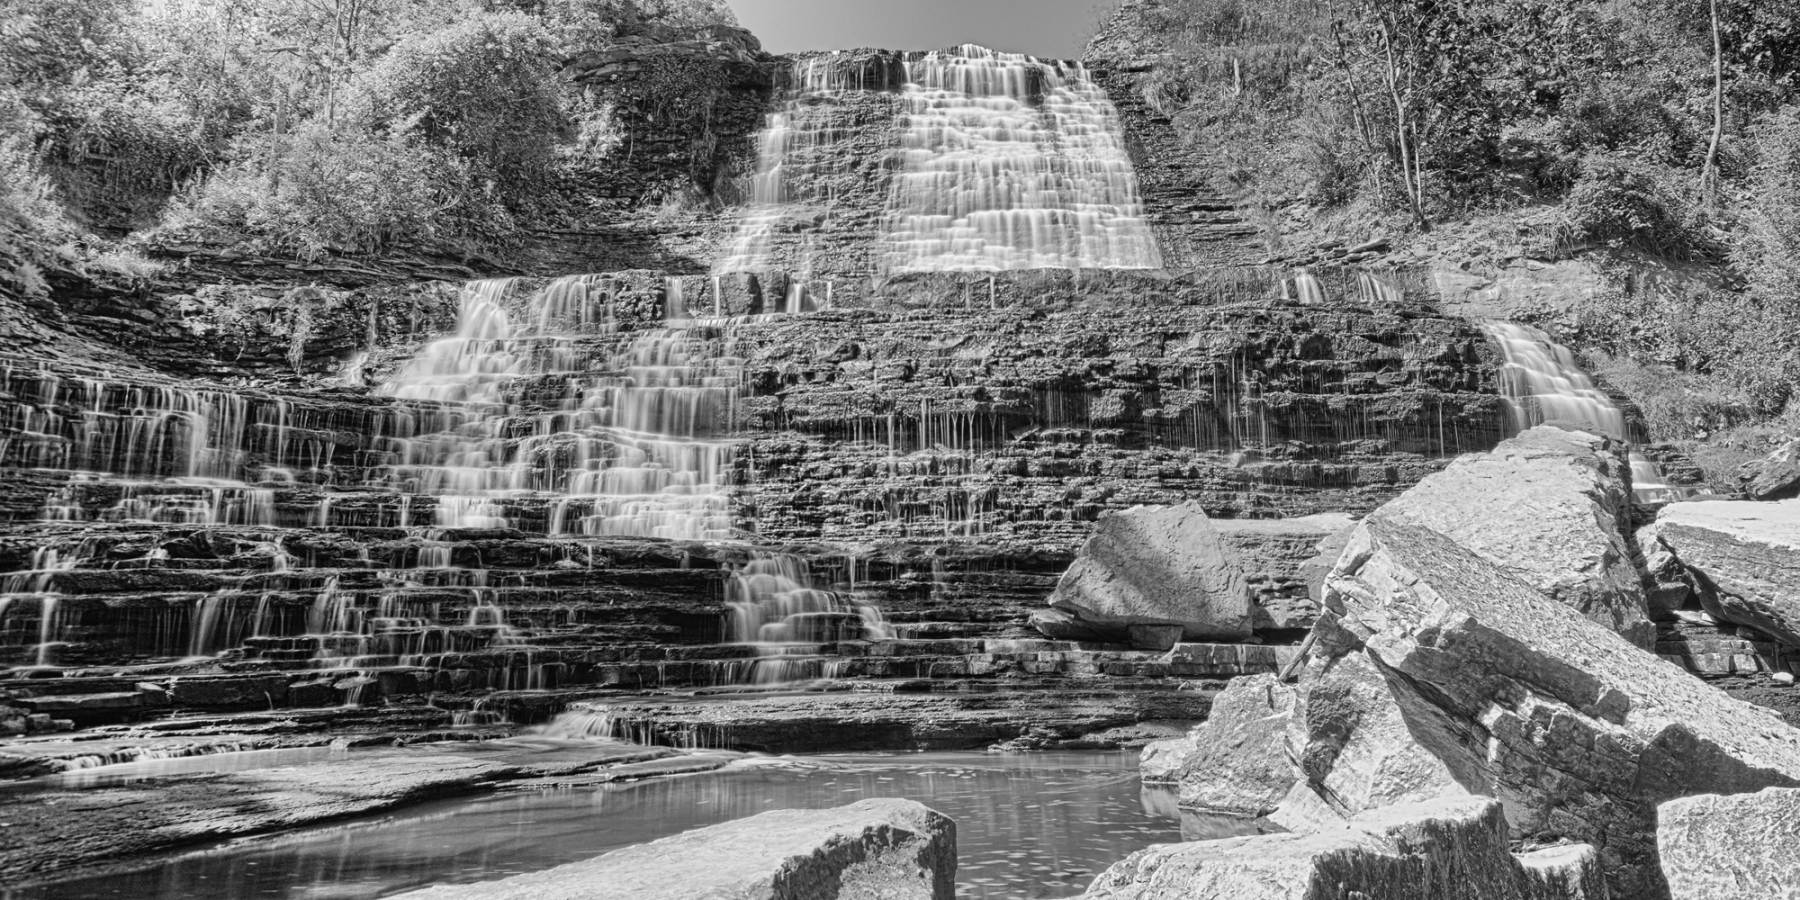 Waterfall, Cascade, Albion, Falls, Fall, Water